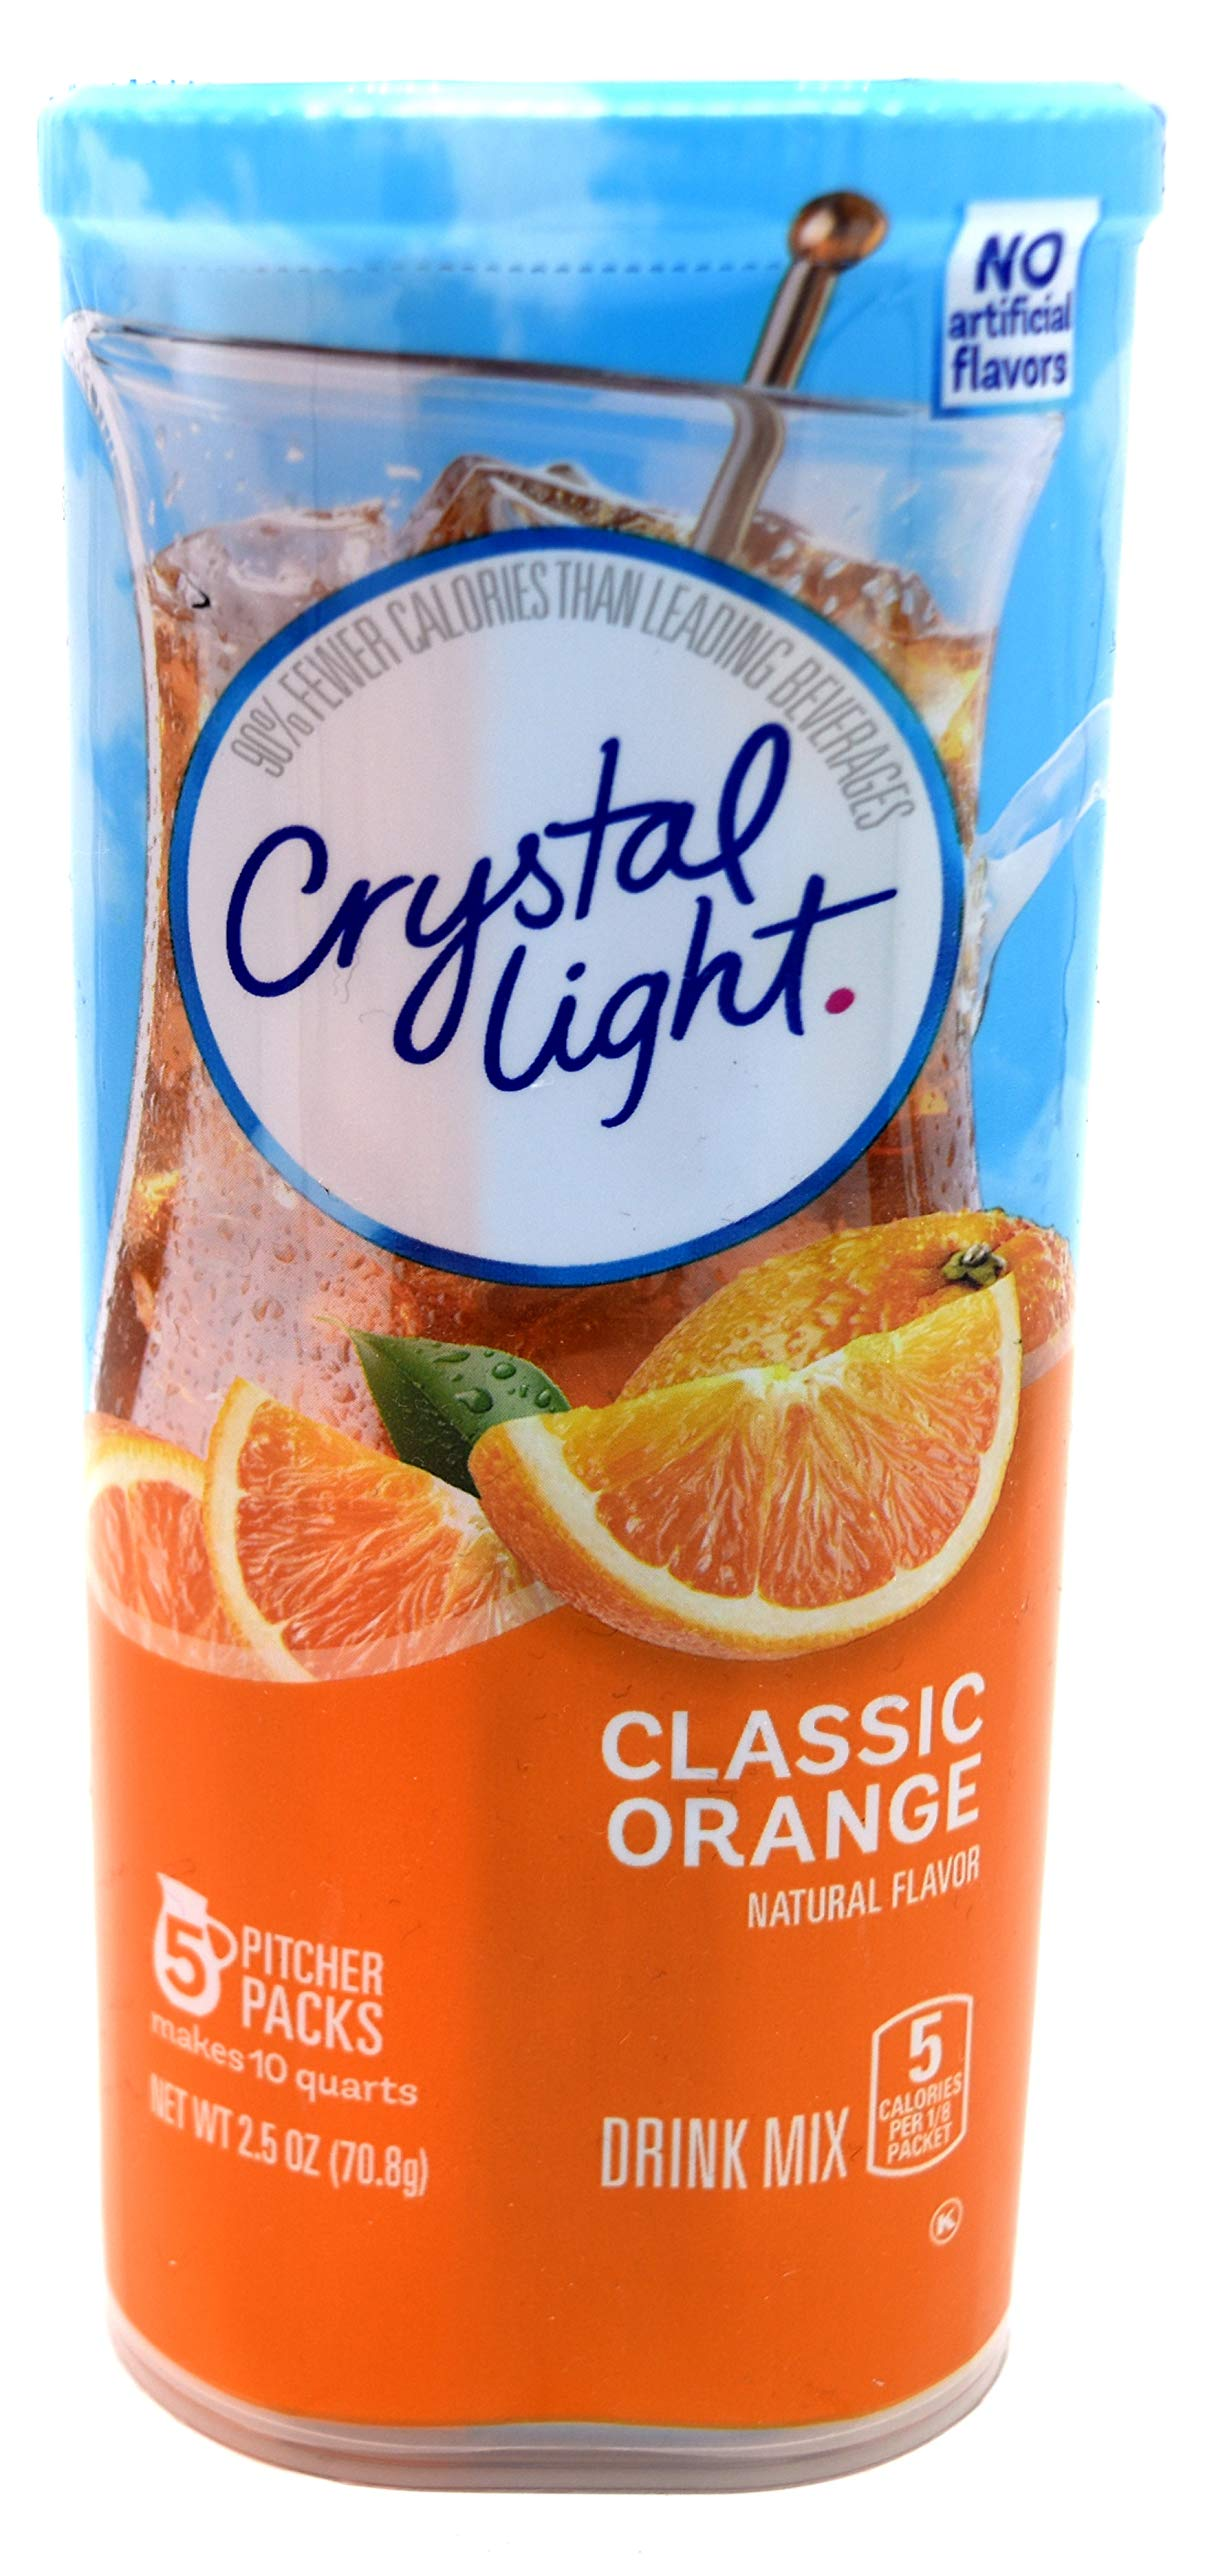 Crystal Light Classic Orange Drink Mix, 10-Quart Canister (Pack of 7)